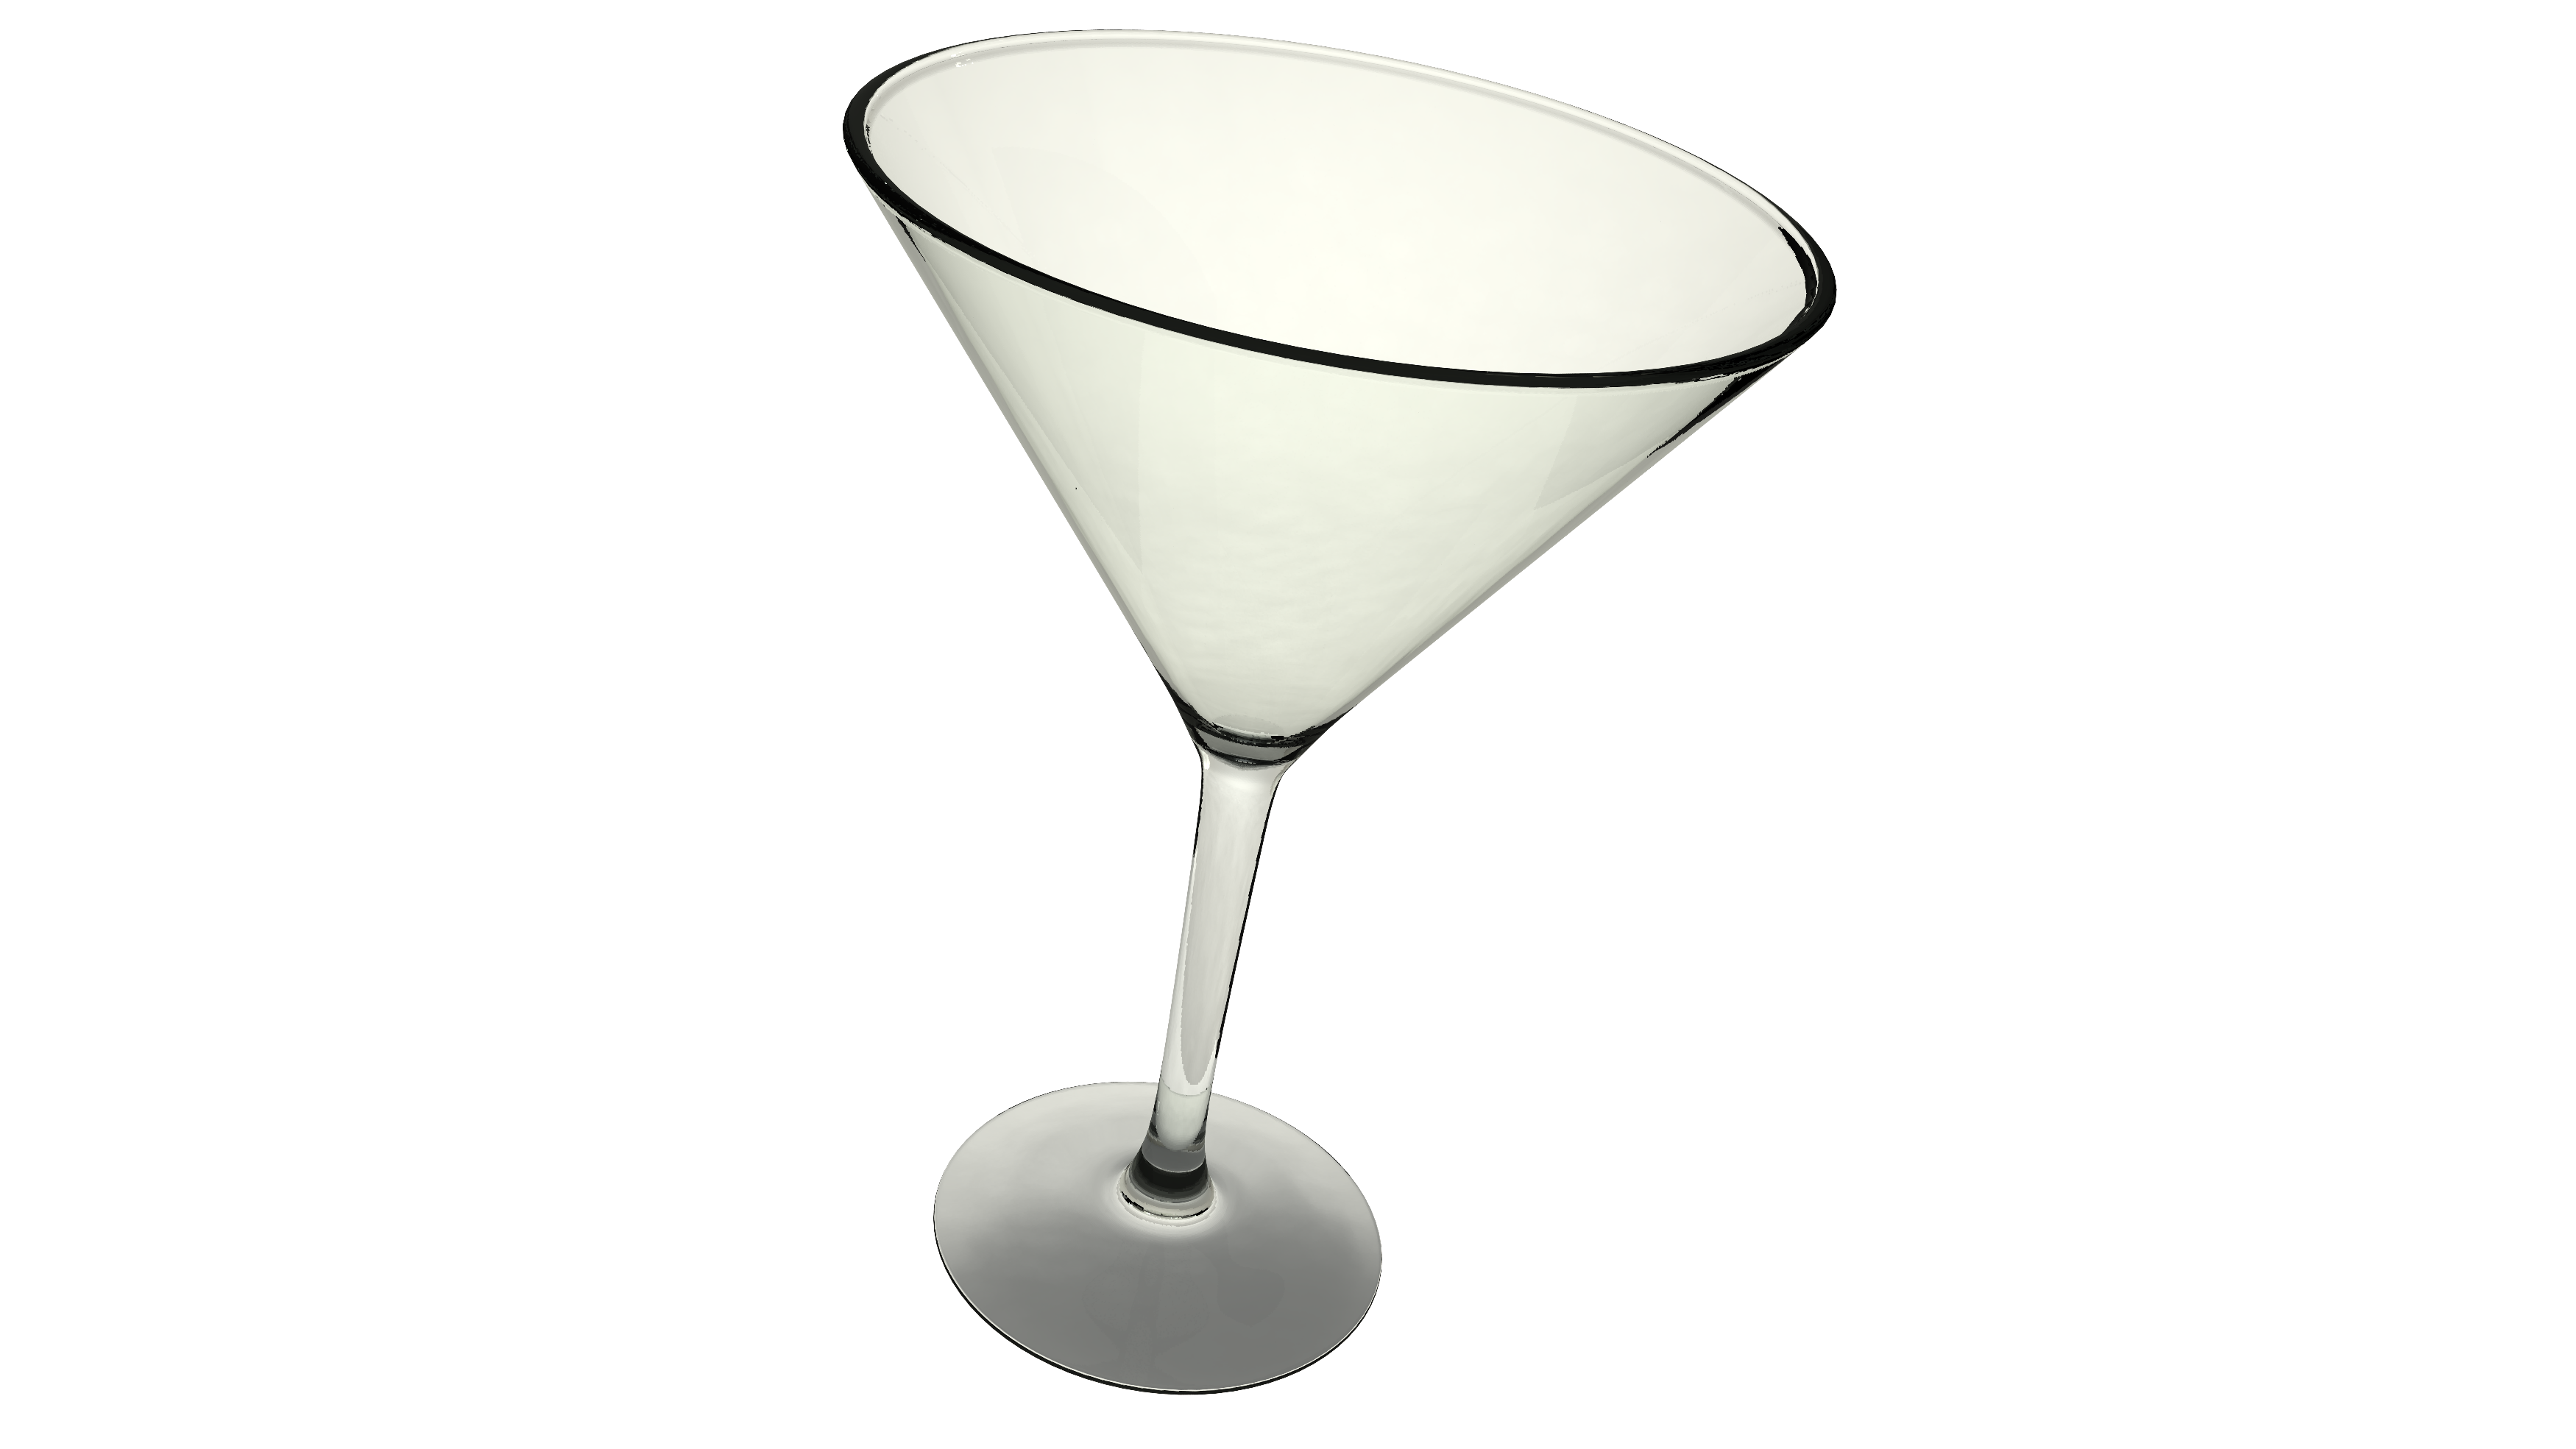 Cocktail Martini Glass Cup Drink Martini Glass Glass Cup Martini Cocktail